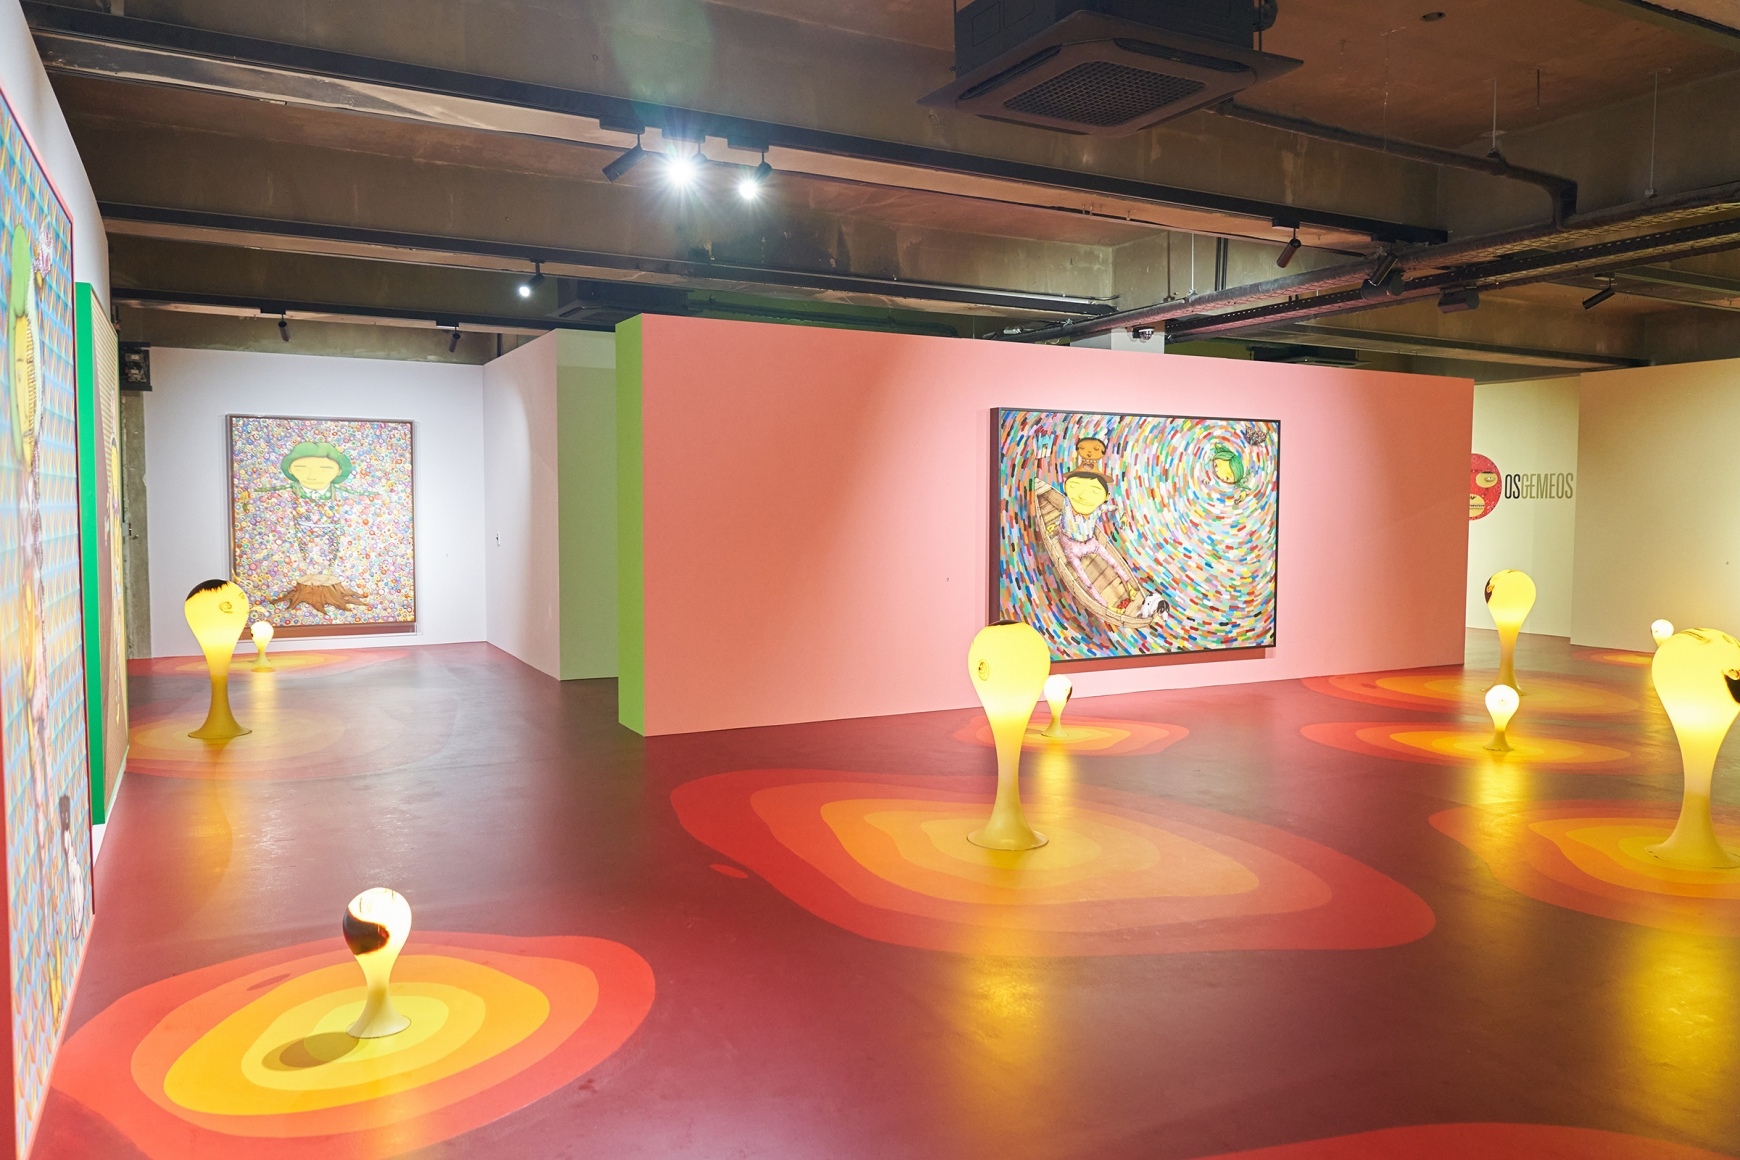 Second installation view of the exhibition OSGEMEOS: You Are My Guest in Seoul